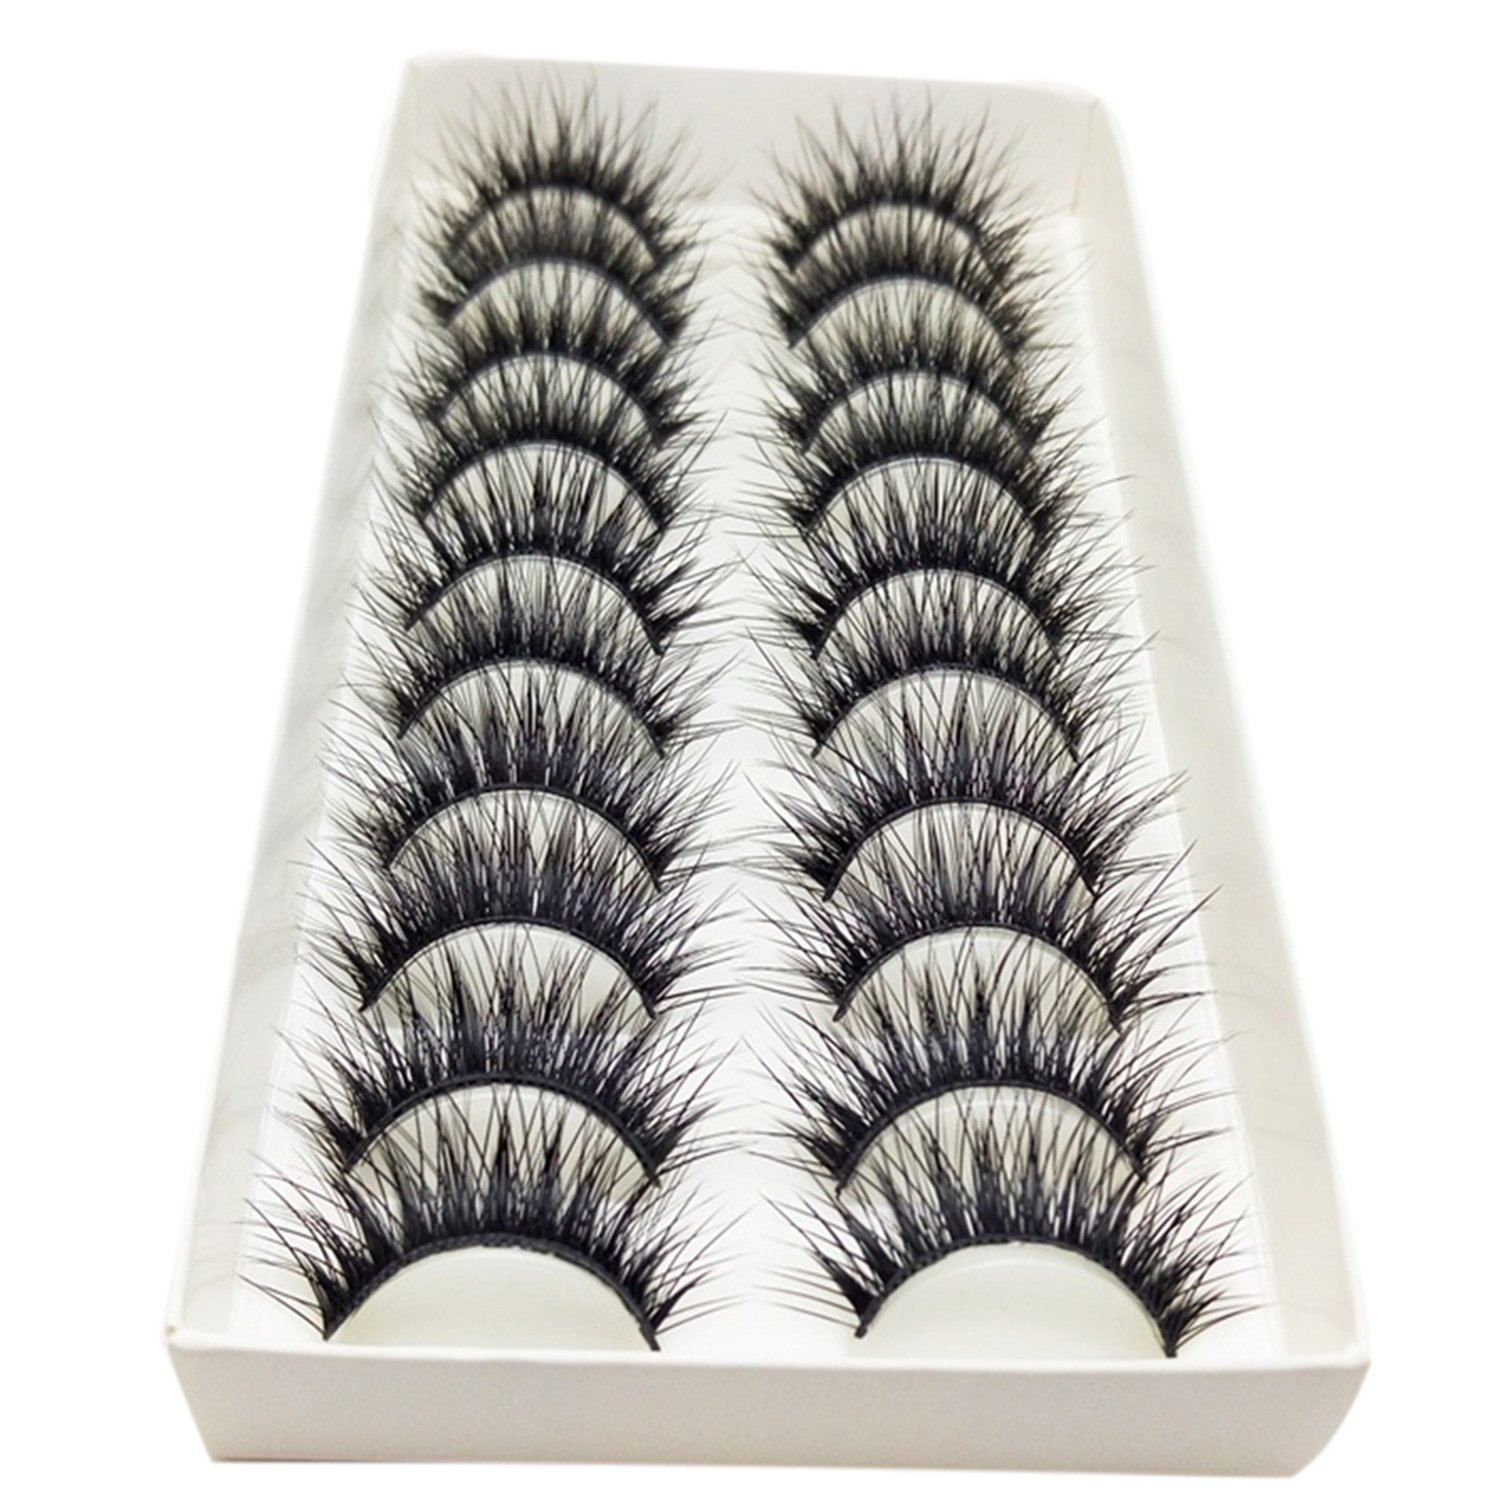 Bluelans® 10 Pairs High Quality Handmade Black Long Thick Cross False Eyelashes Makeup Eye Lash Extension